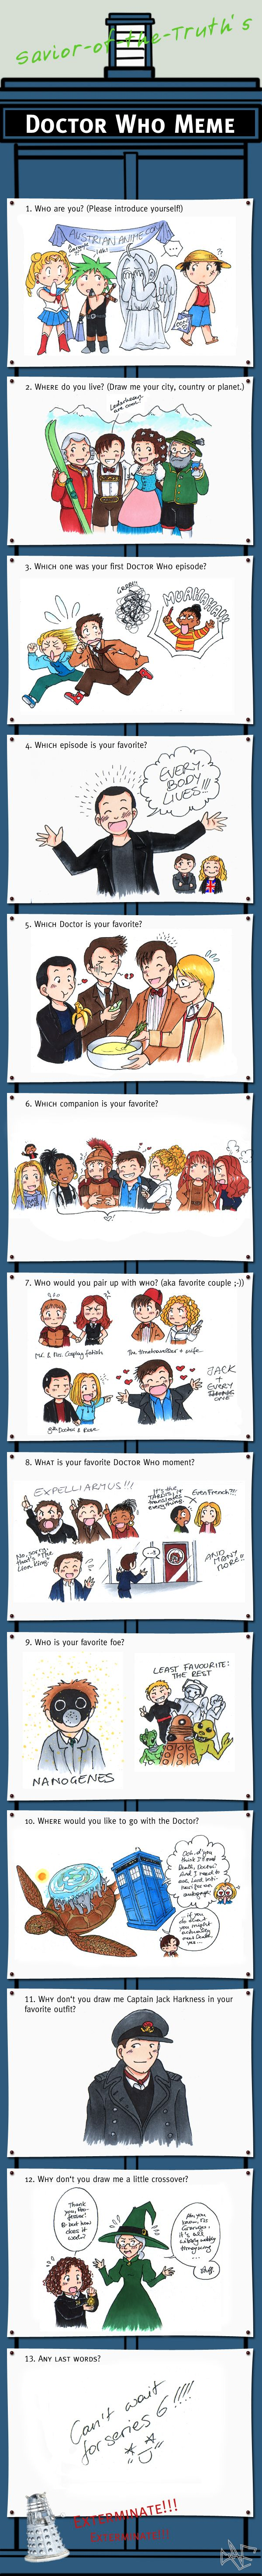 Doctor Who meme no.2 by akabeko on DeviantArt